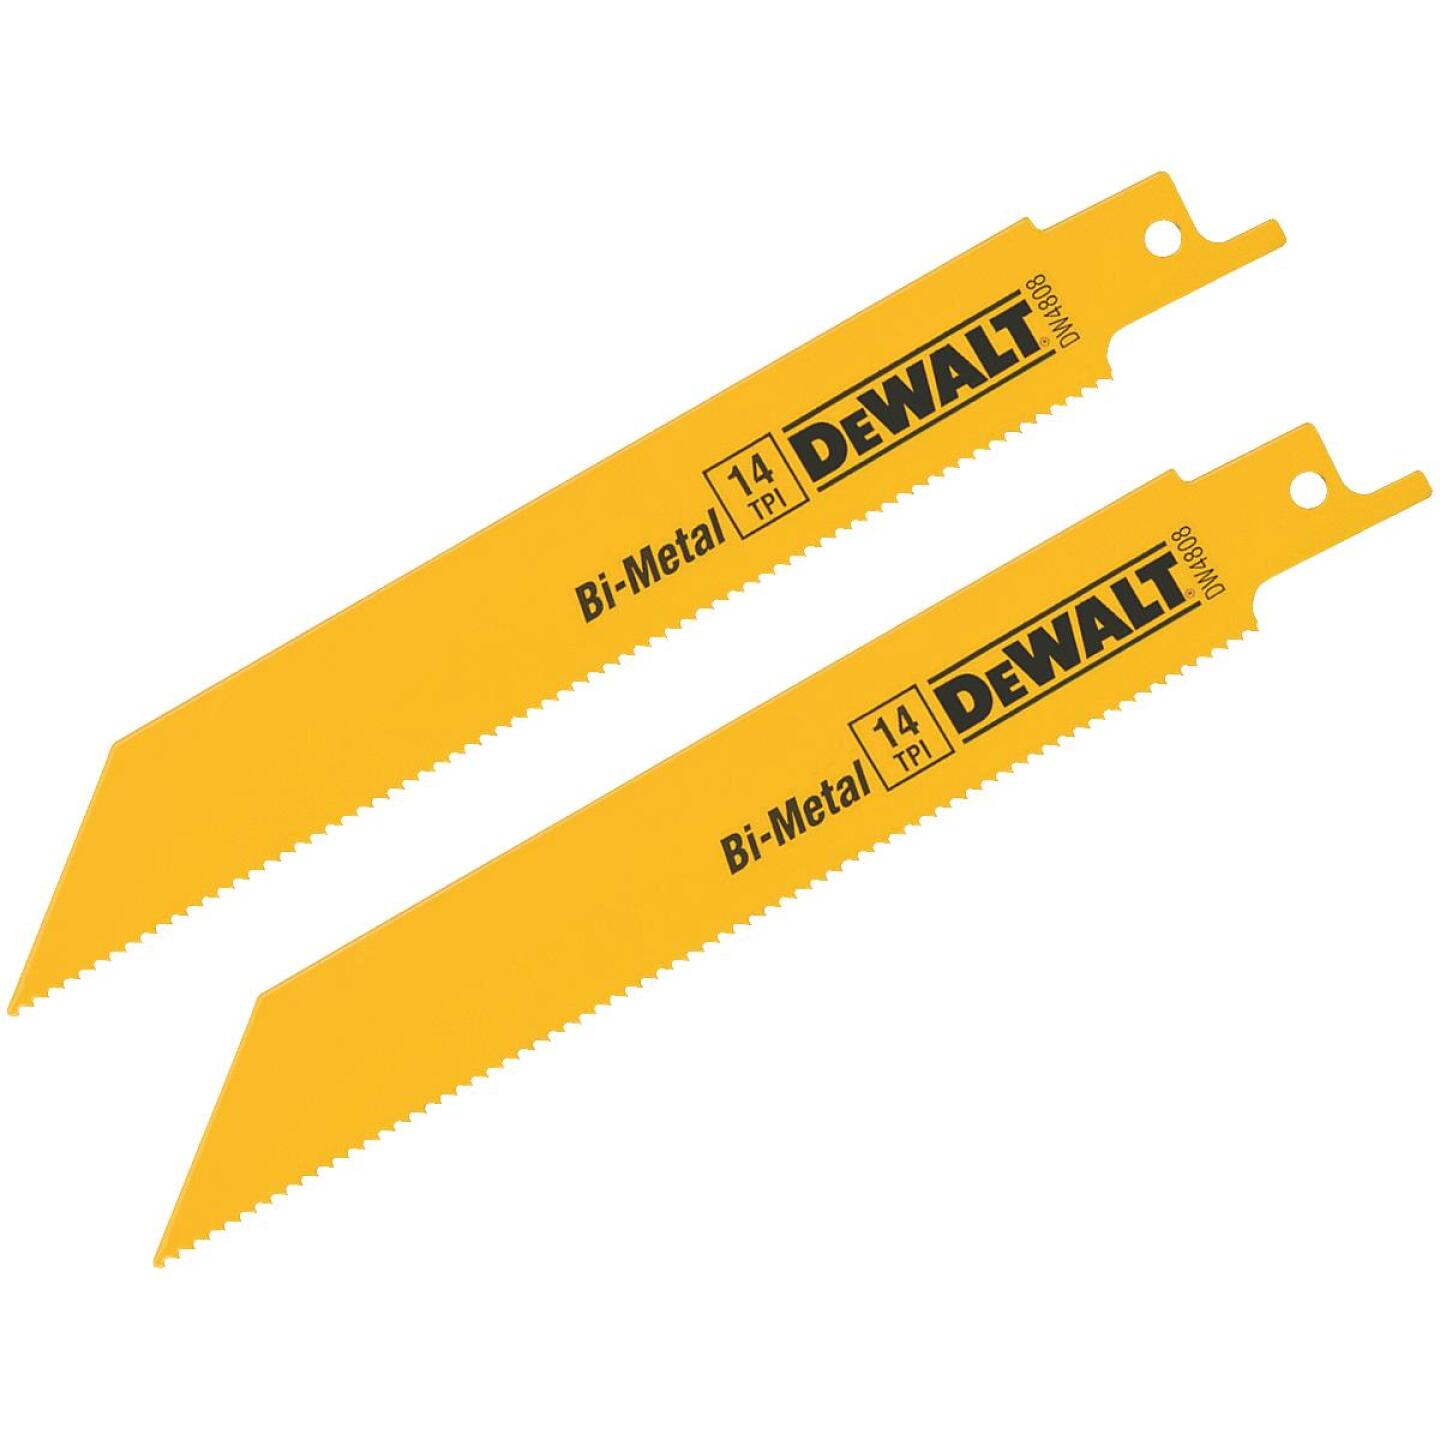 DeWalt 6 In. 14 TPI Thick Metal Reciprocating Saw Blade (2-Pack) Image 1